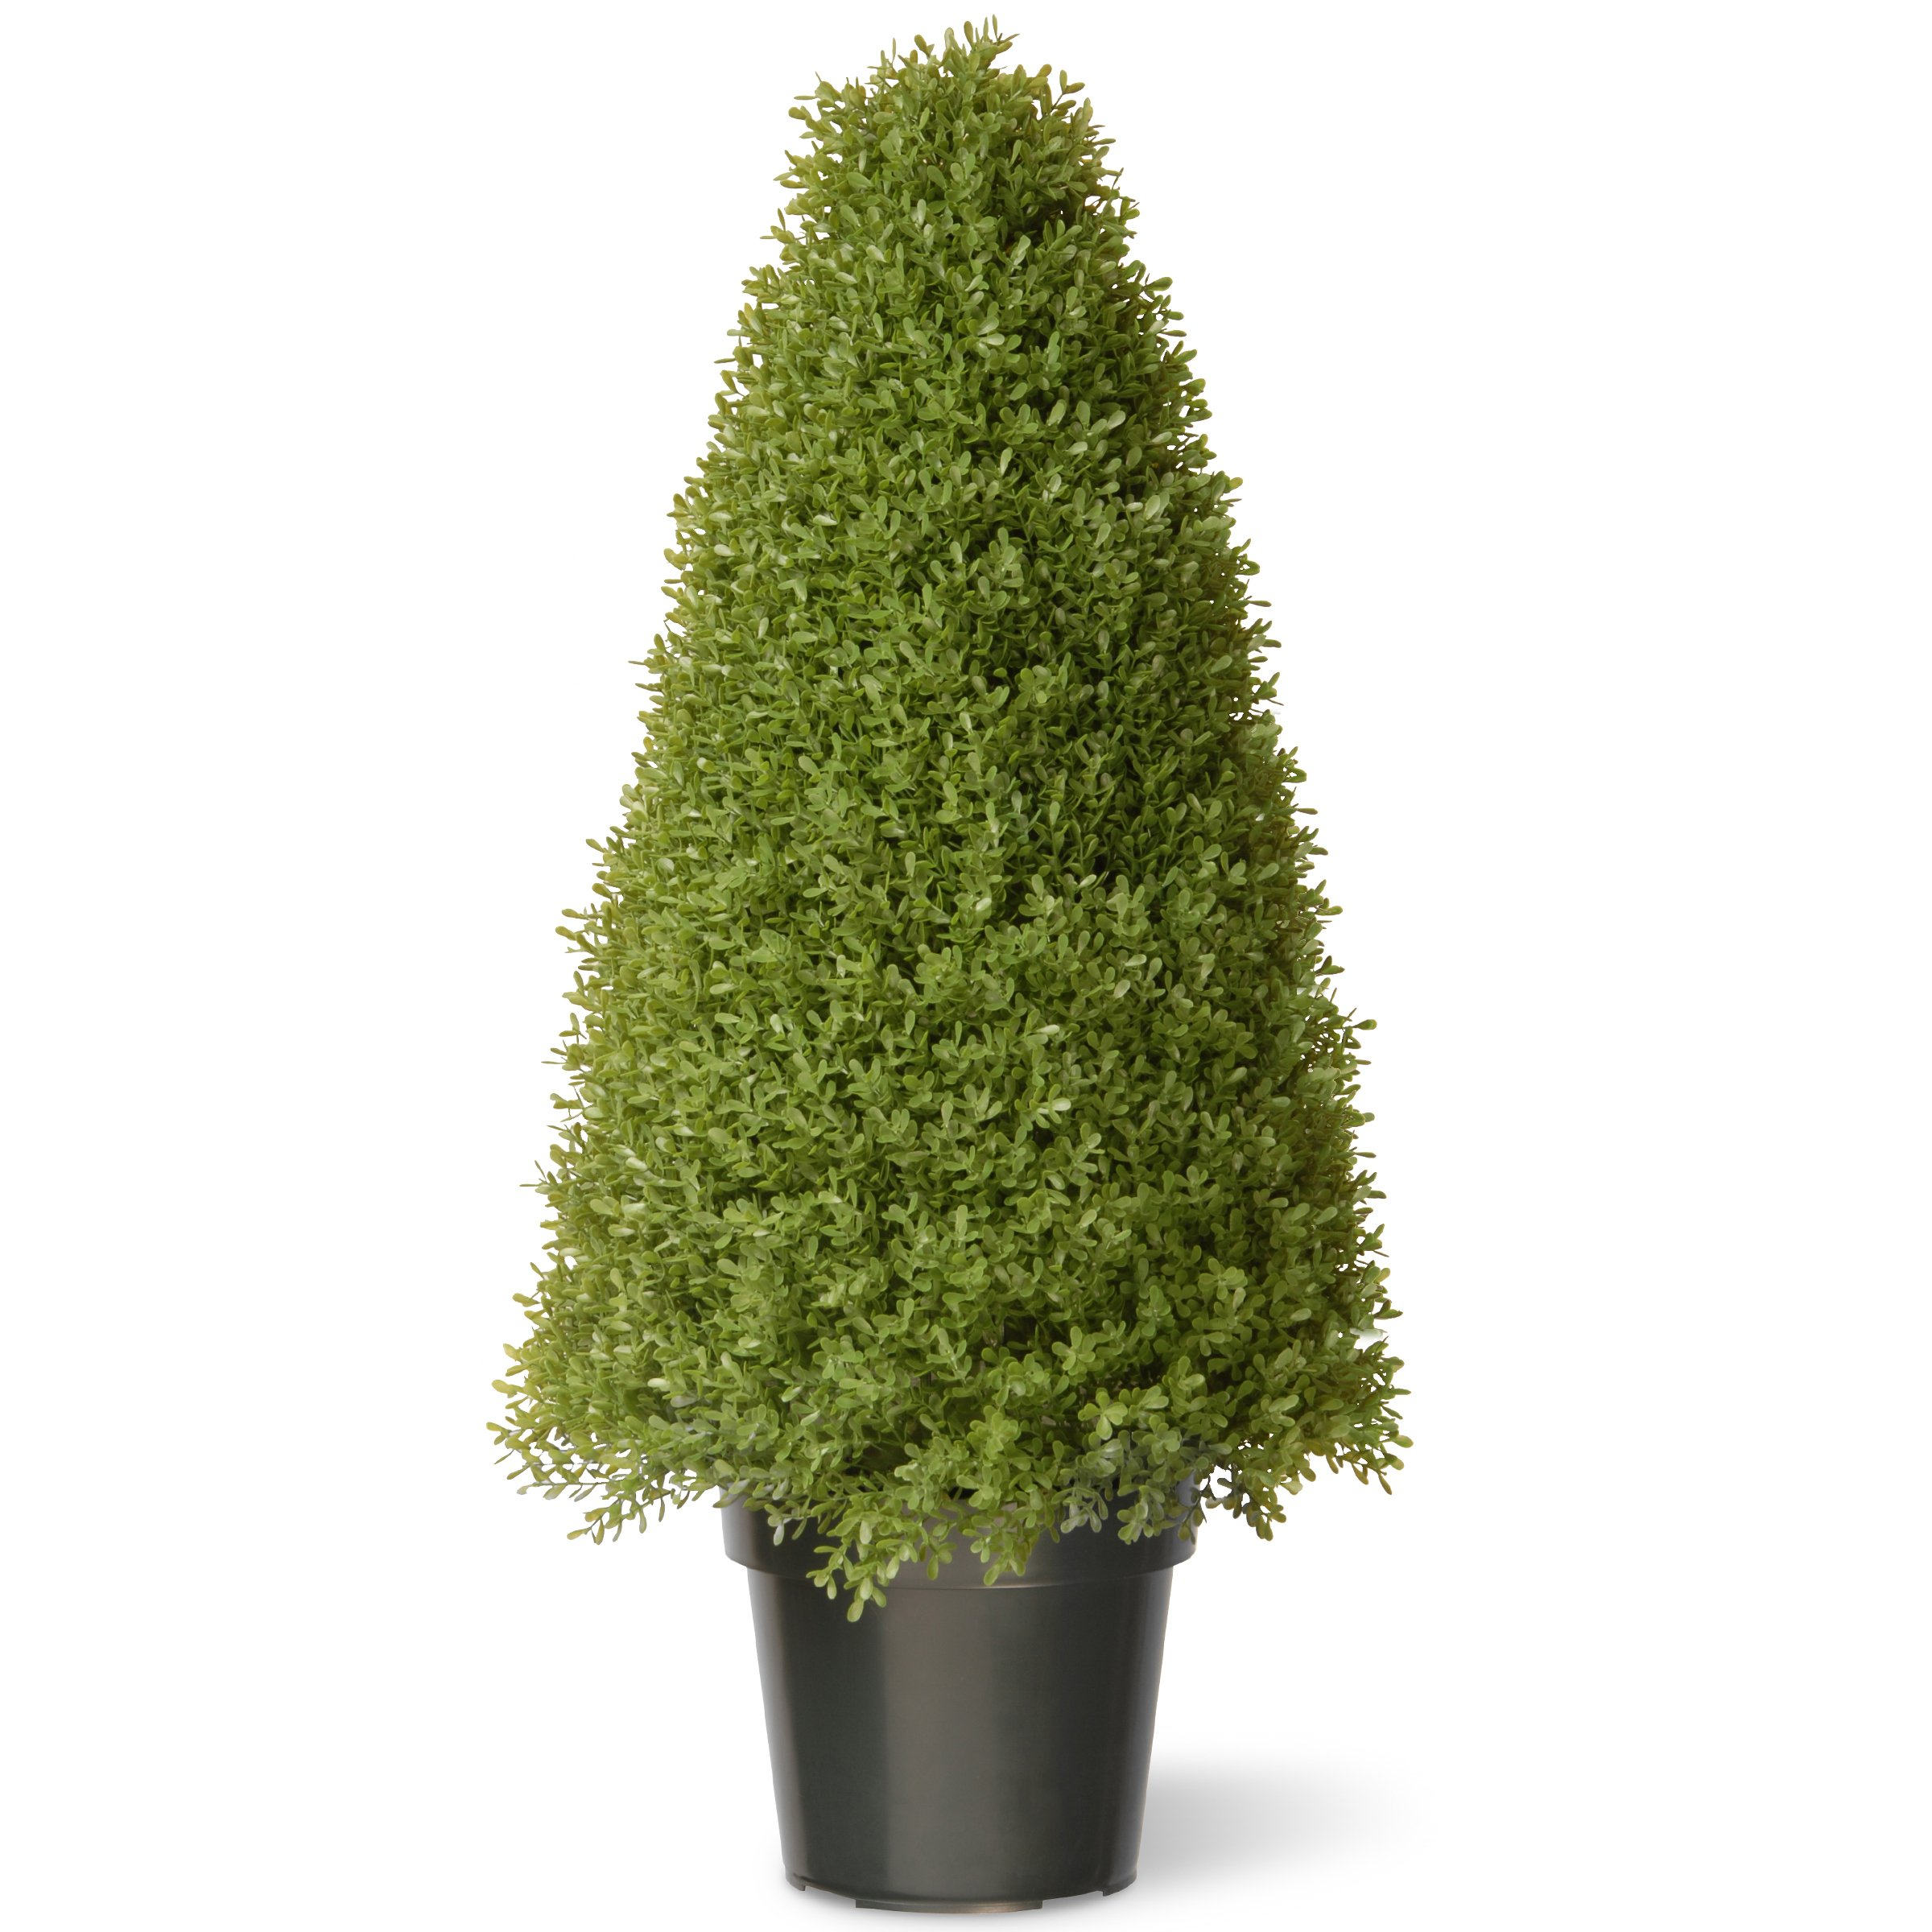 National Tree 36 Inch Boxwood Tree in Green Pot (LBX4-36)